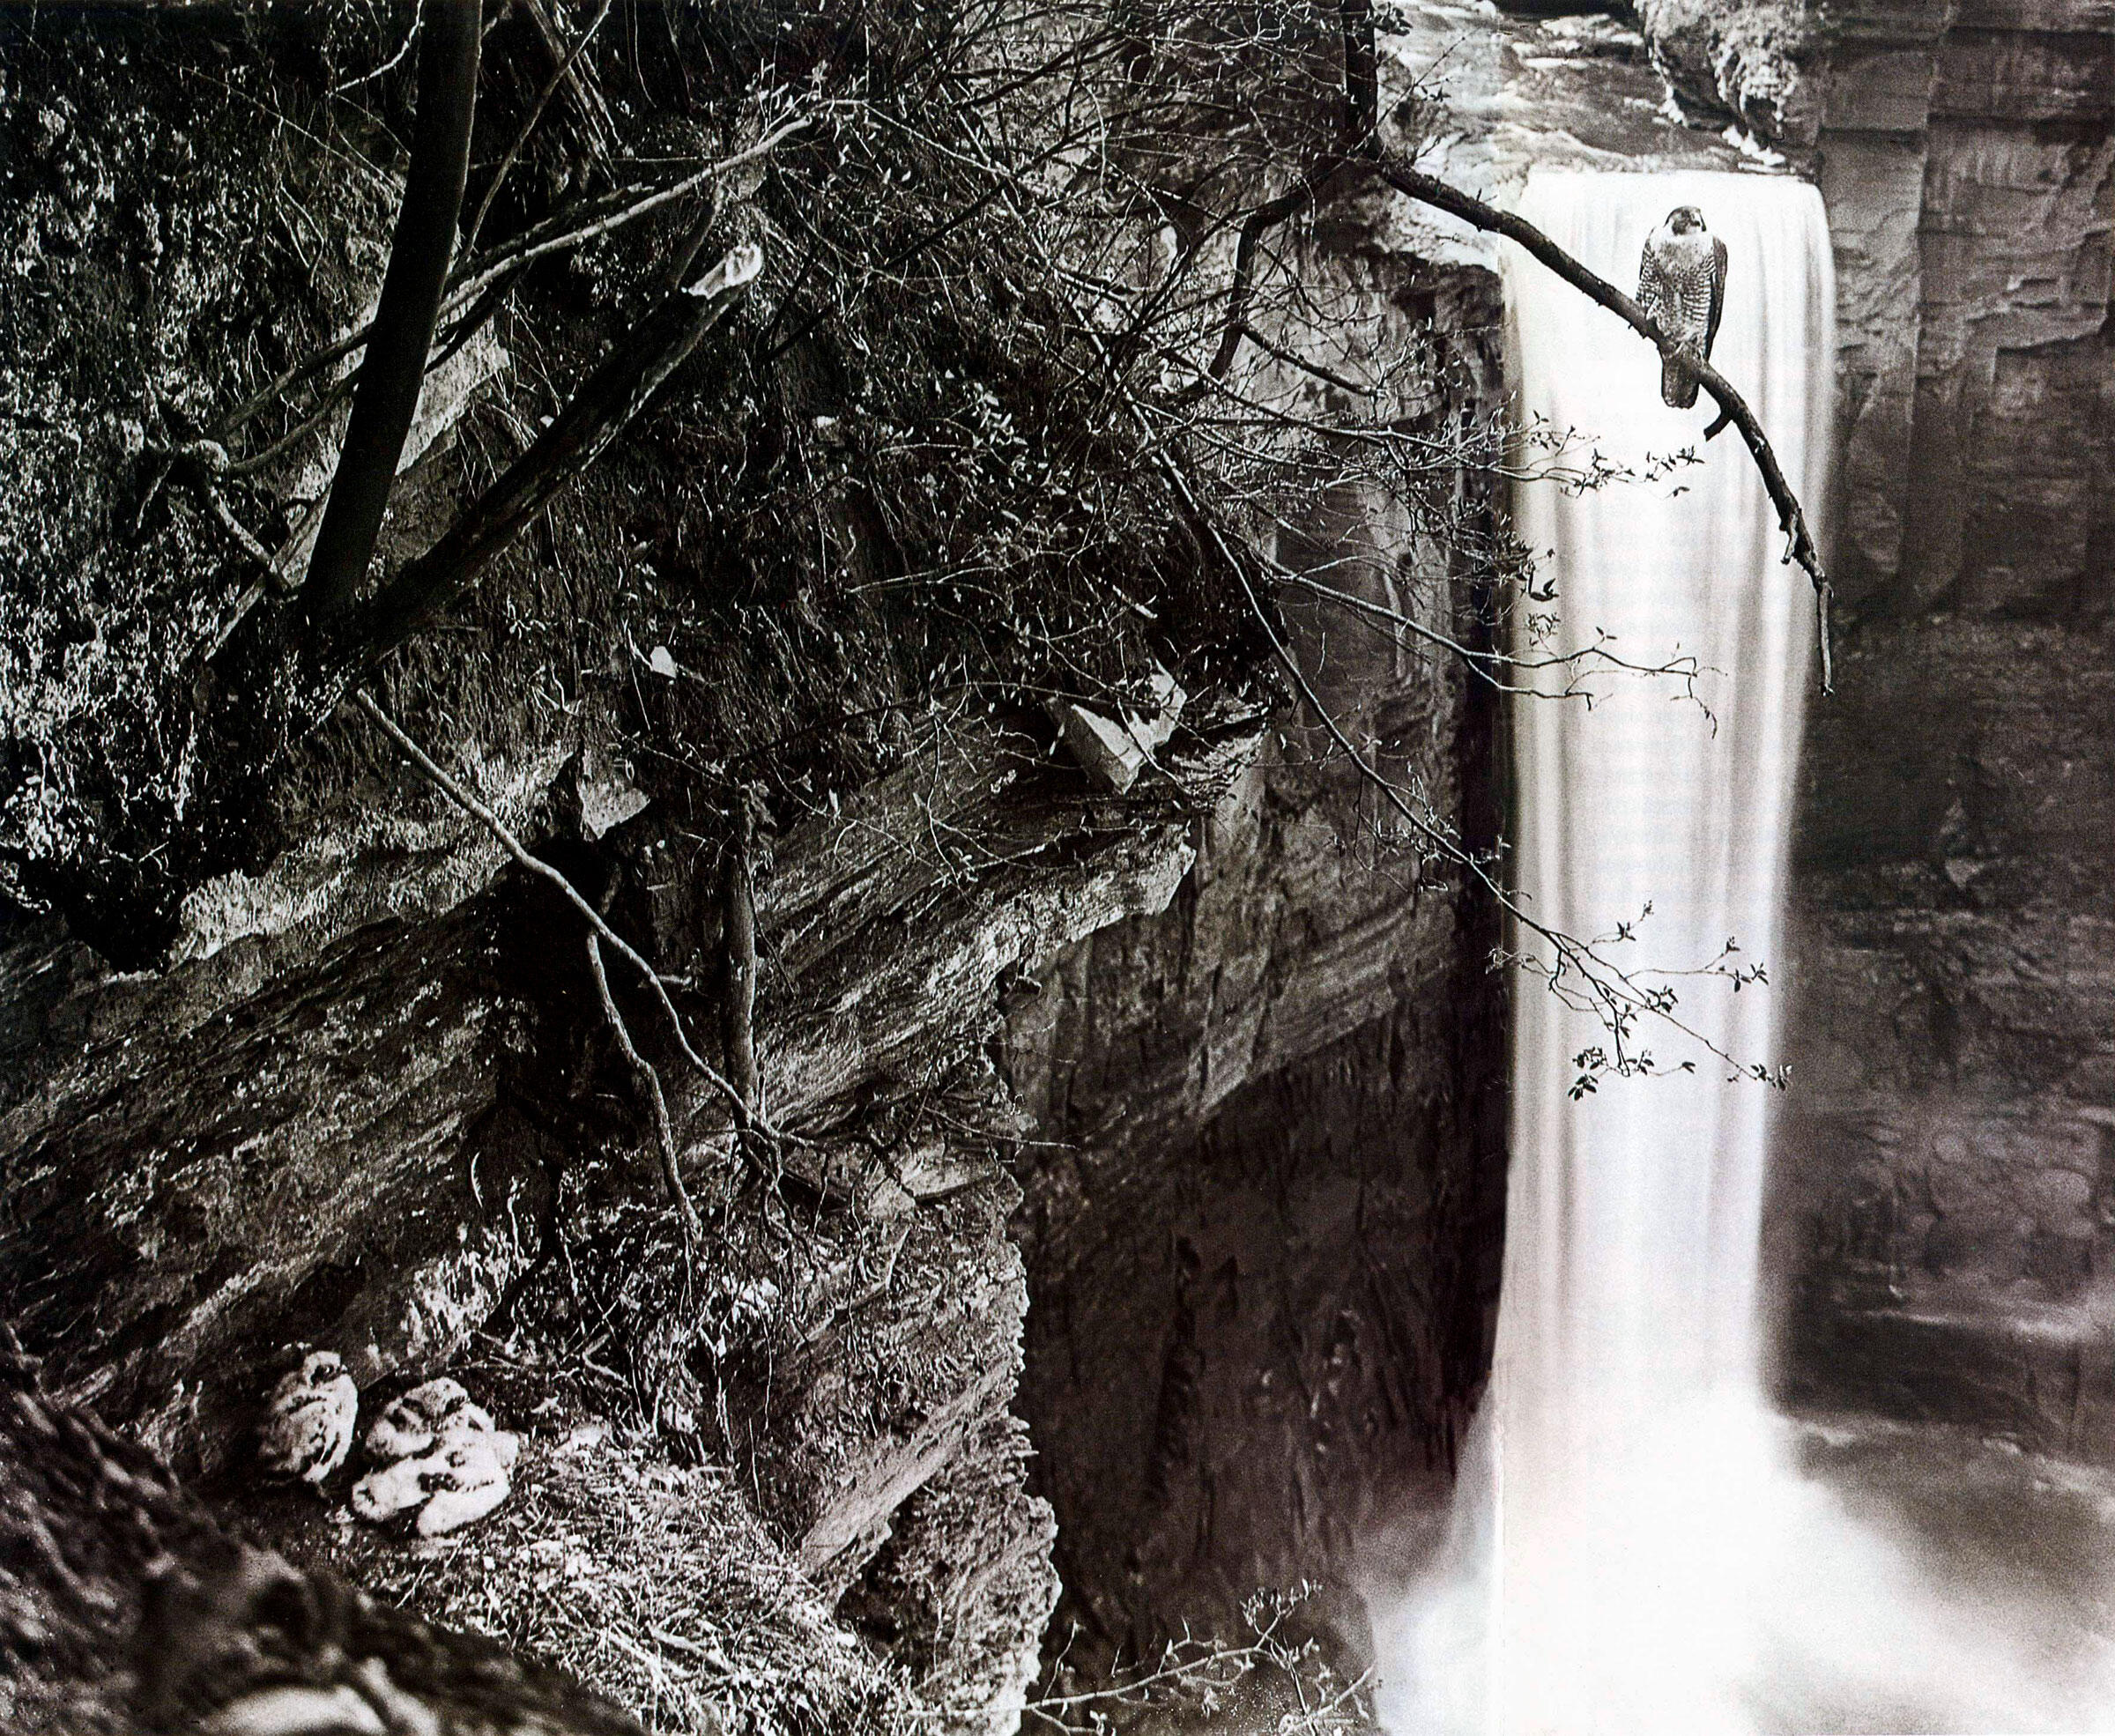 Allen's famous photograph of the Peregrine Falcons nesting beside Taughannock Falls in the 1930s. Arthur A. Allen